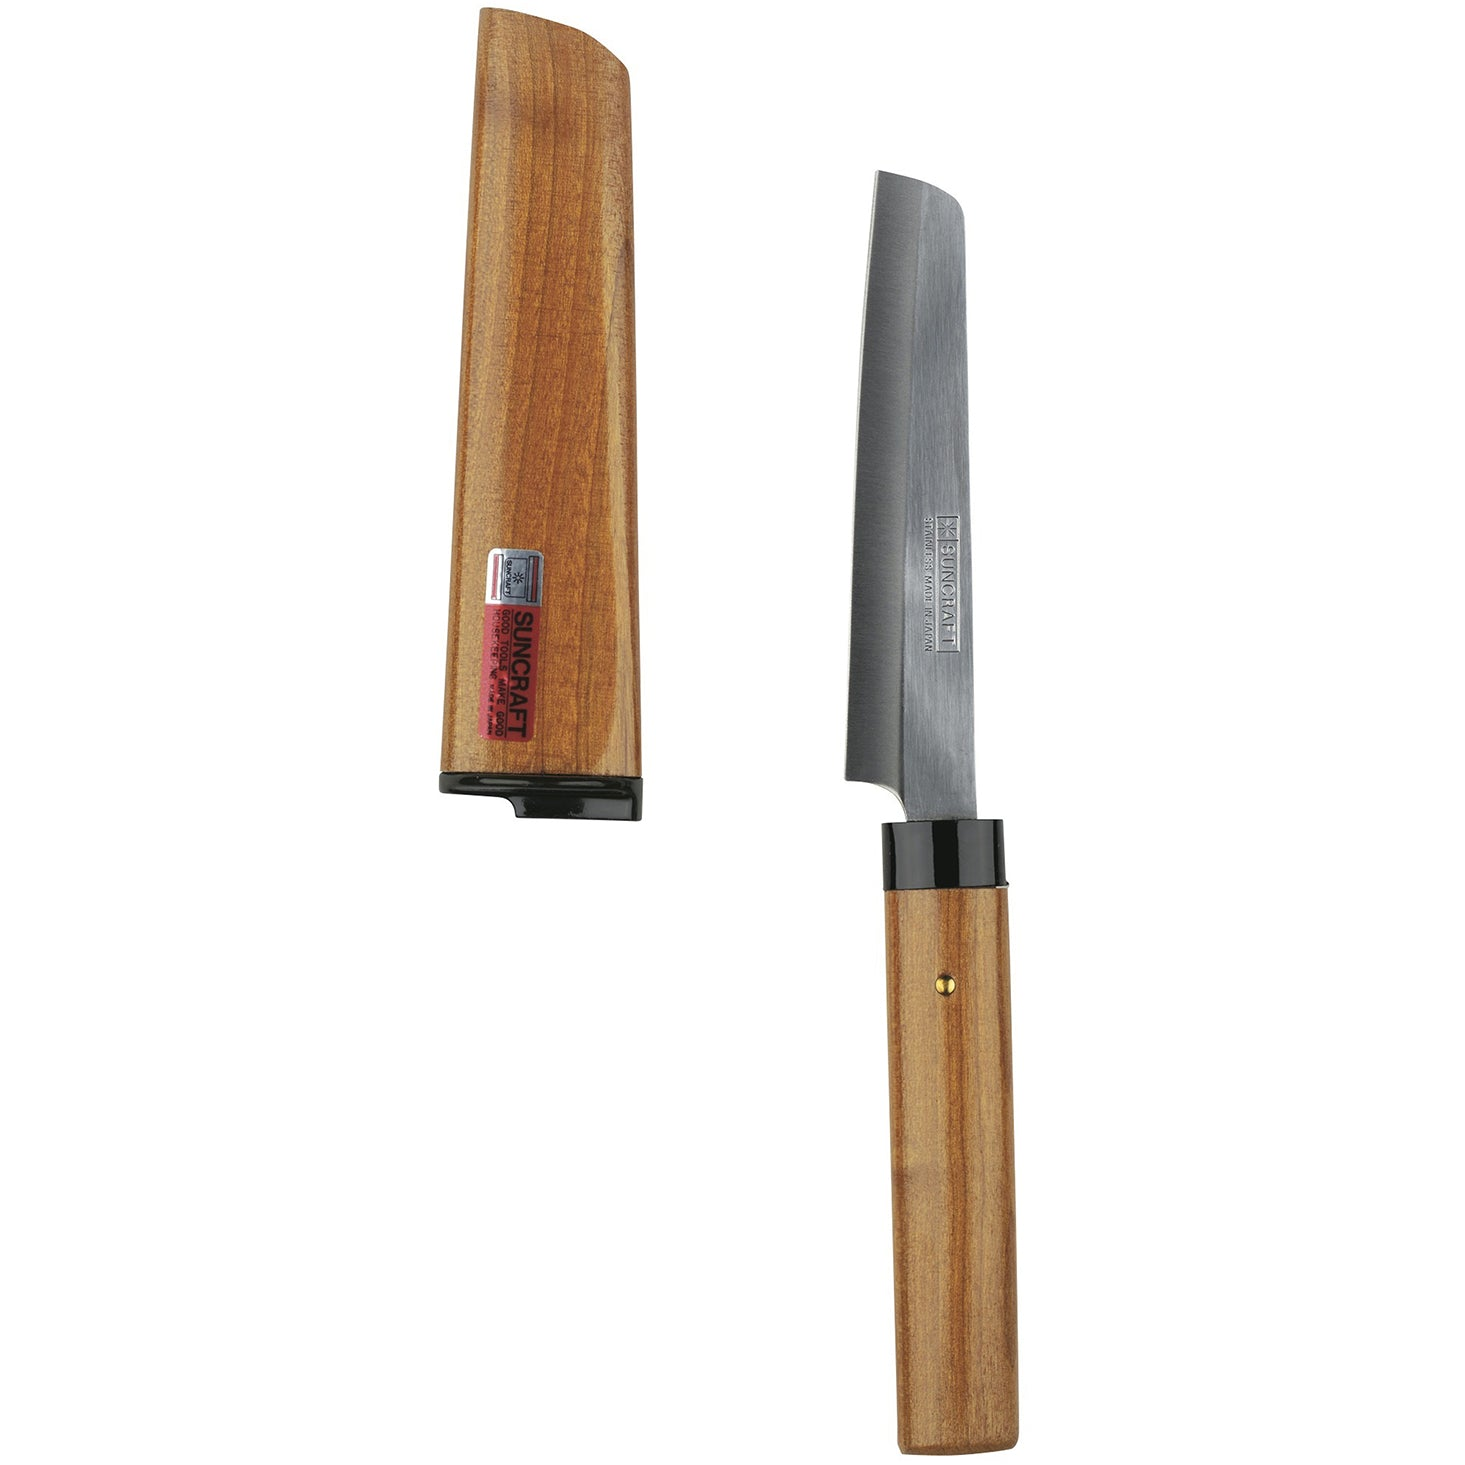 Fruit Knife with Cherry Wood Handle and Scabbard